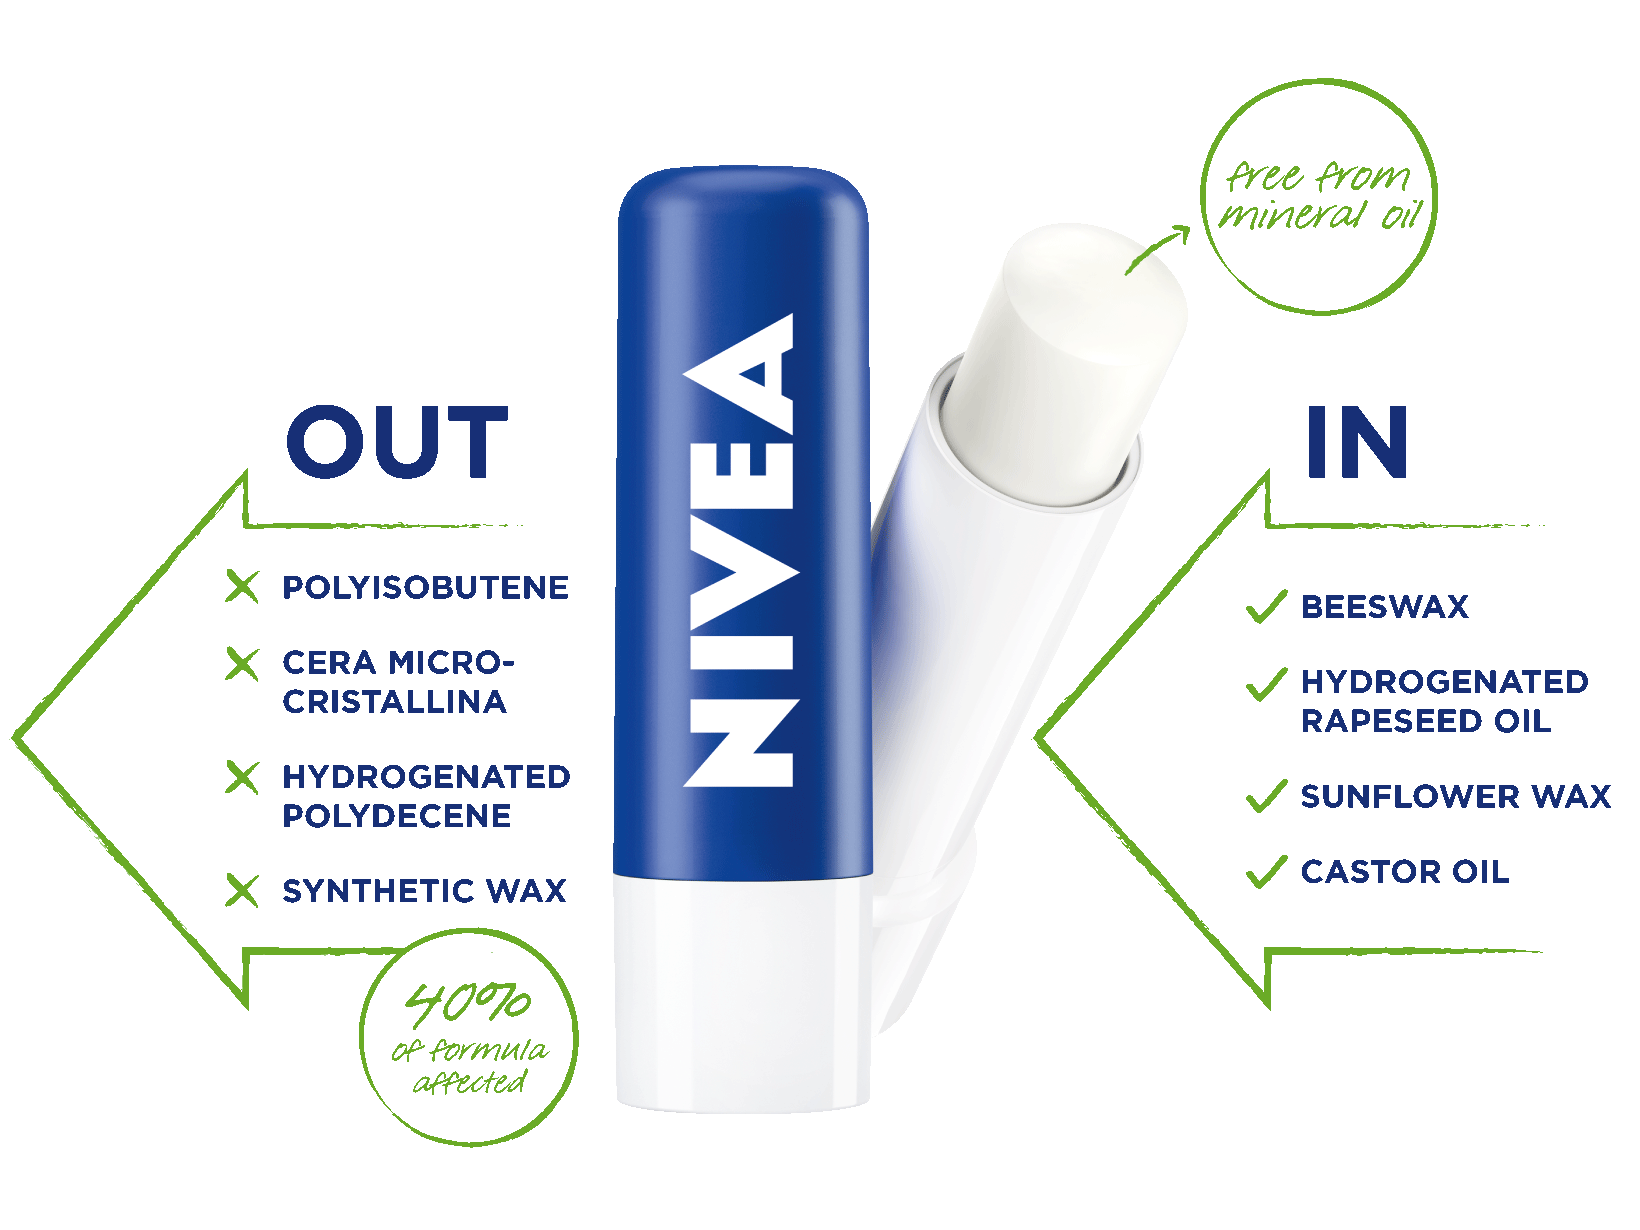 nivea-synthetic-out-natural-in